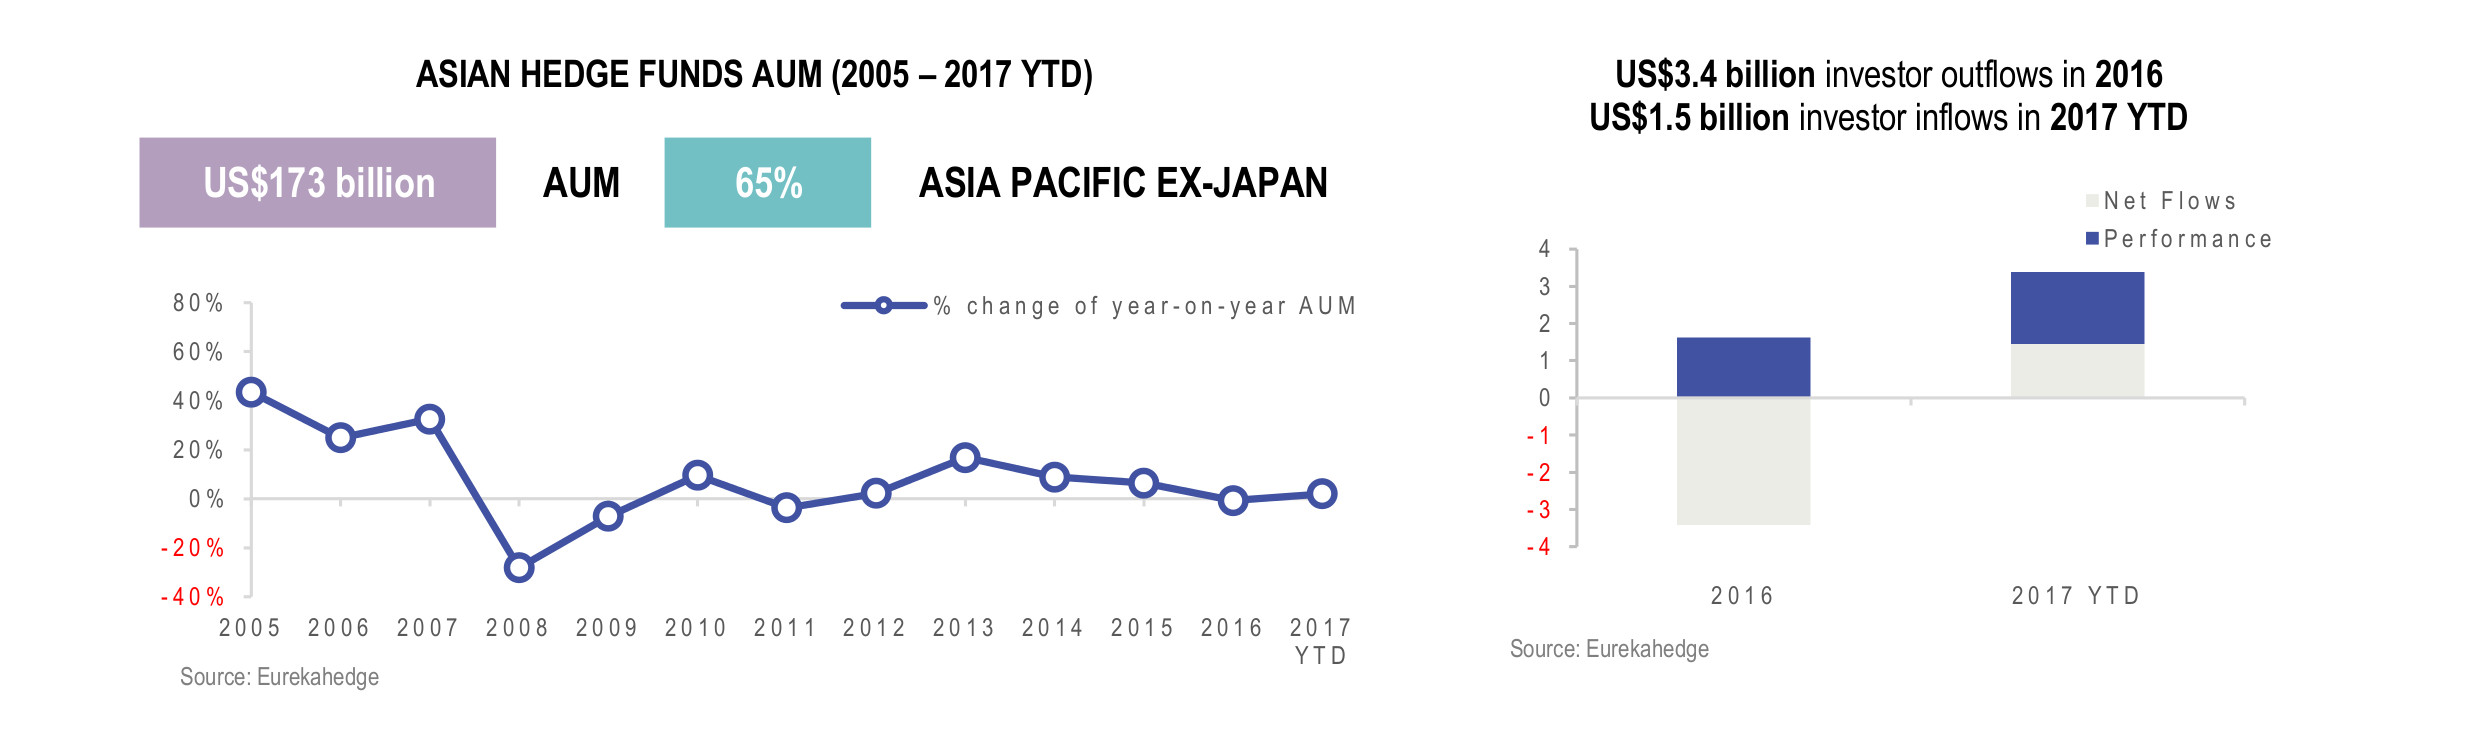 Asian Hedge Fund Infographic April 2017- AUM and Asia Pacific Ex-Japan